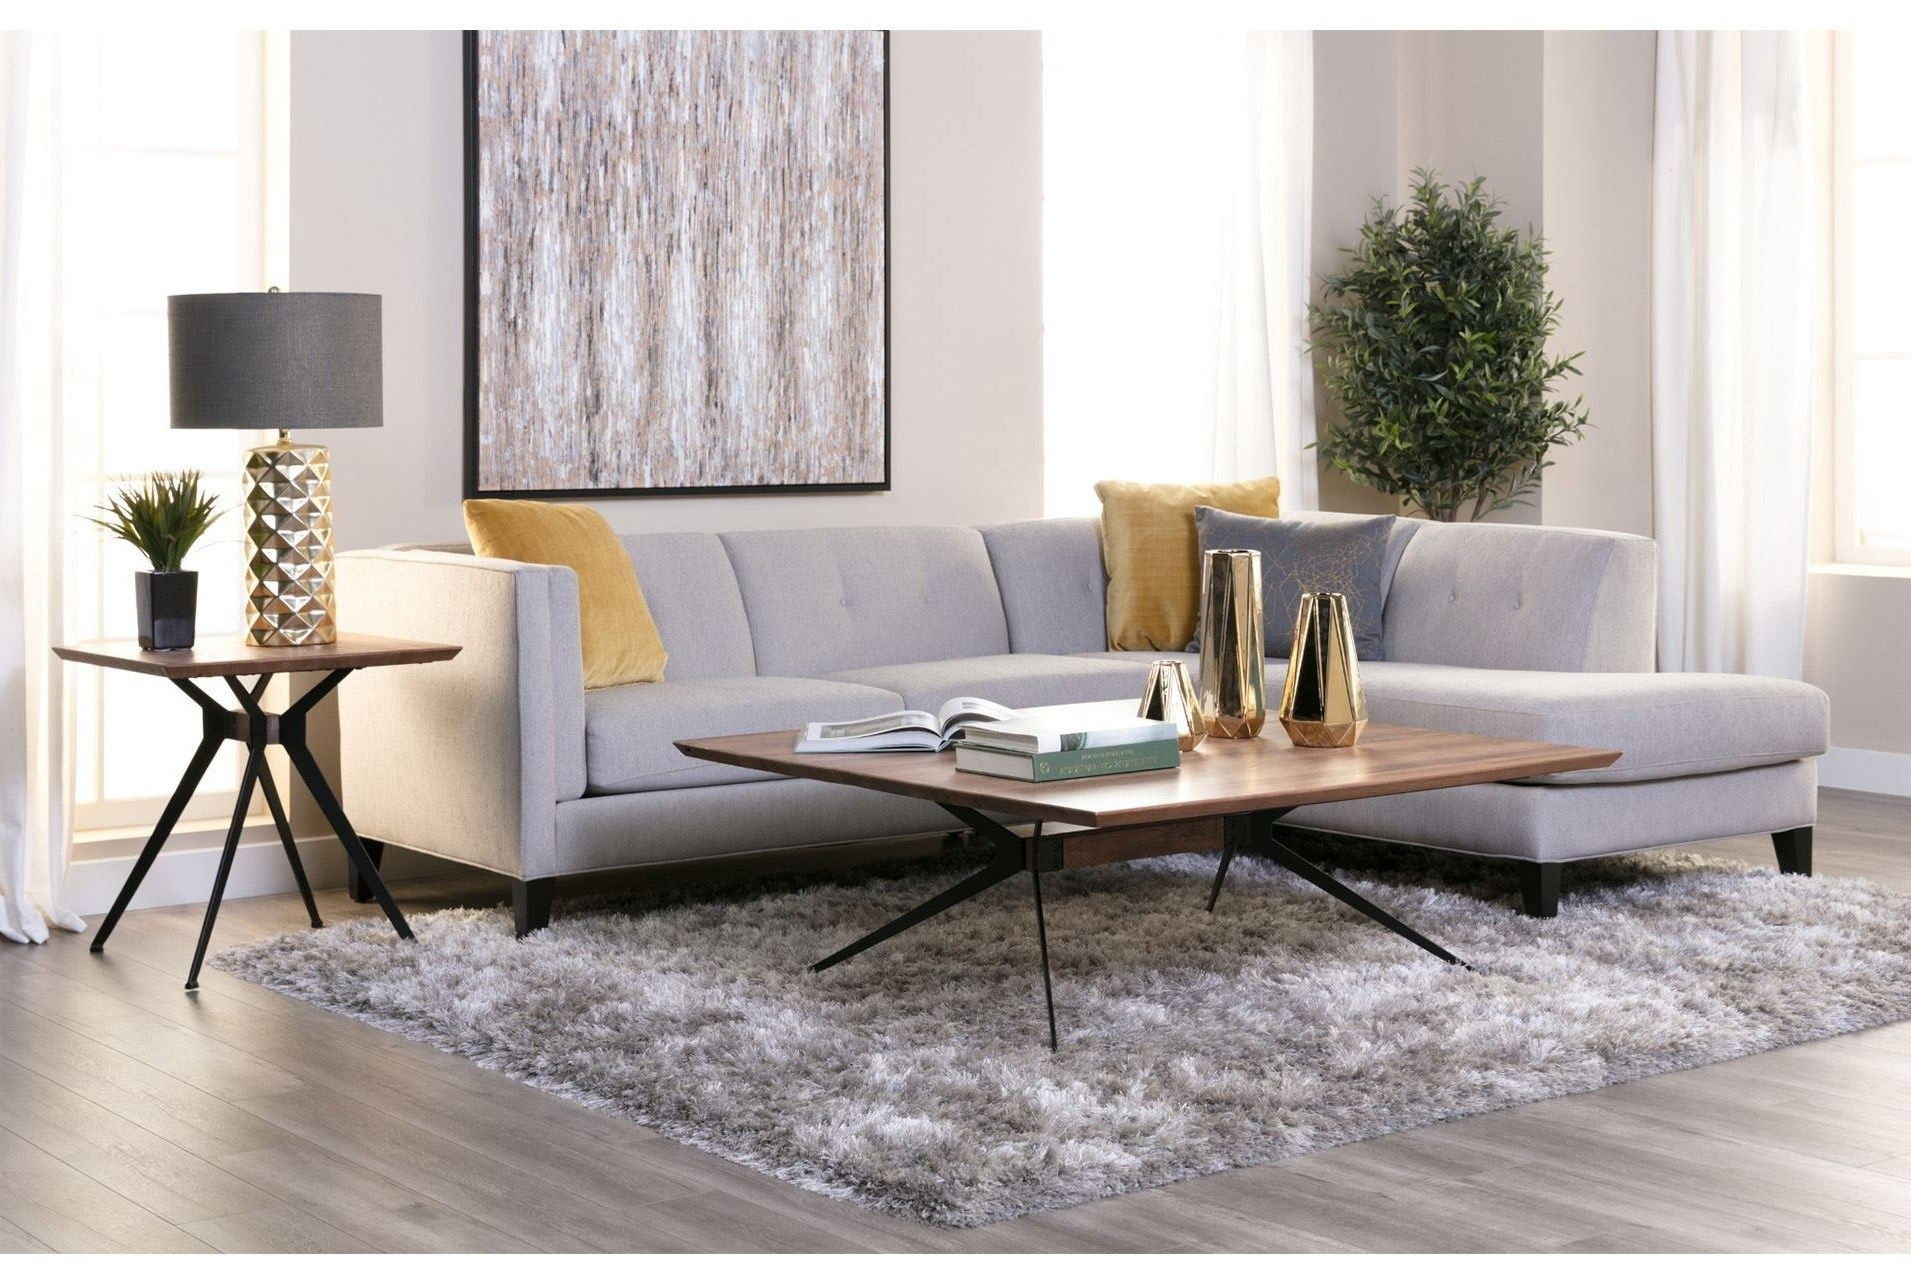 Avery 2 Piece Sectional W/raf Armless Chaise | Livingroom Pillow Within Avery 2 Piece Sectionals With Raf Armless Chaise (Image 8 of 25)